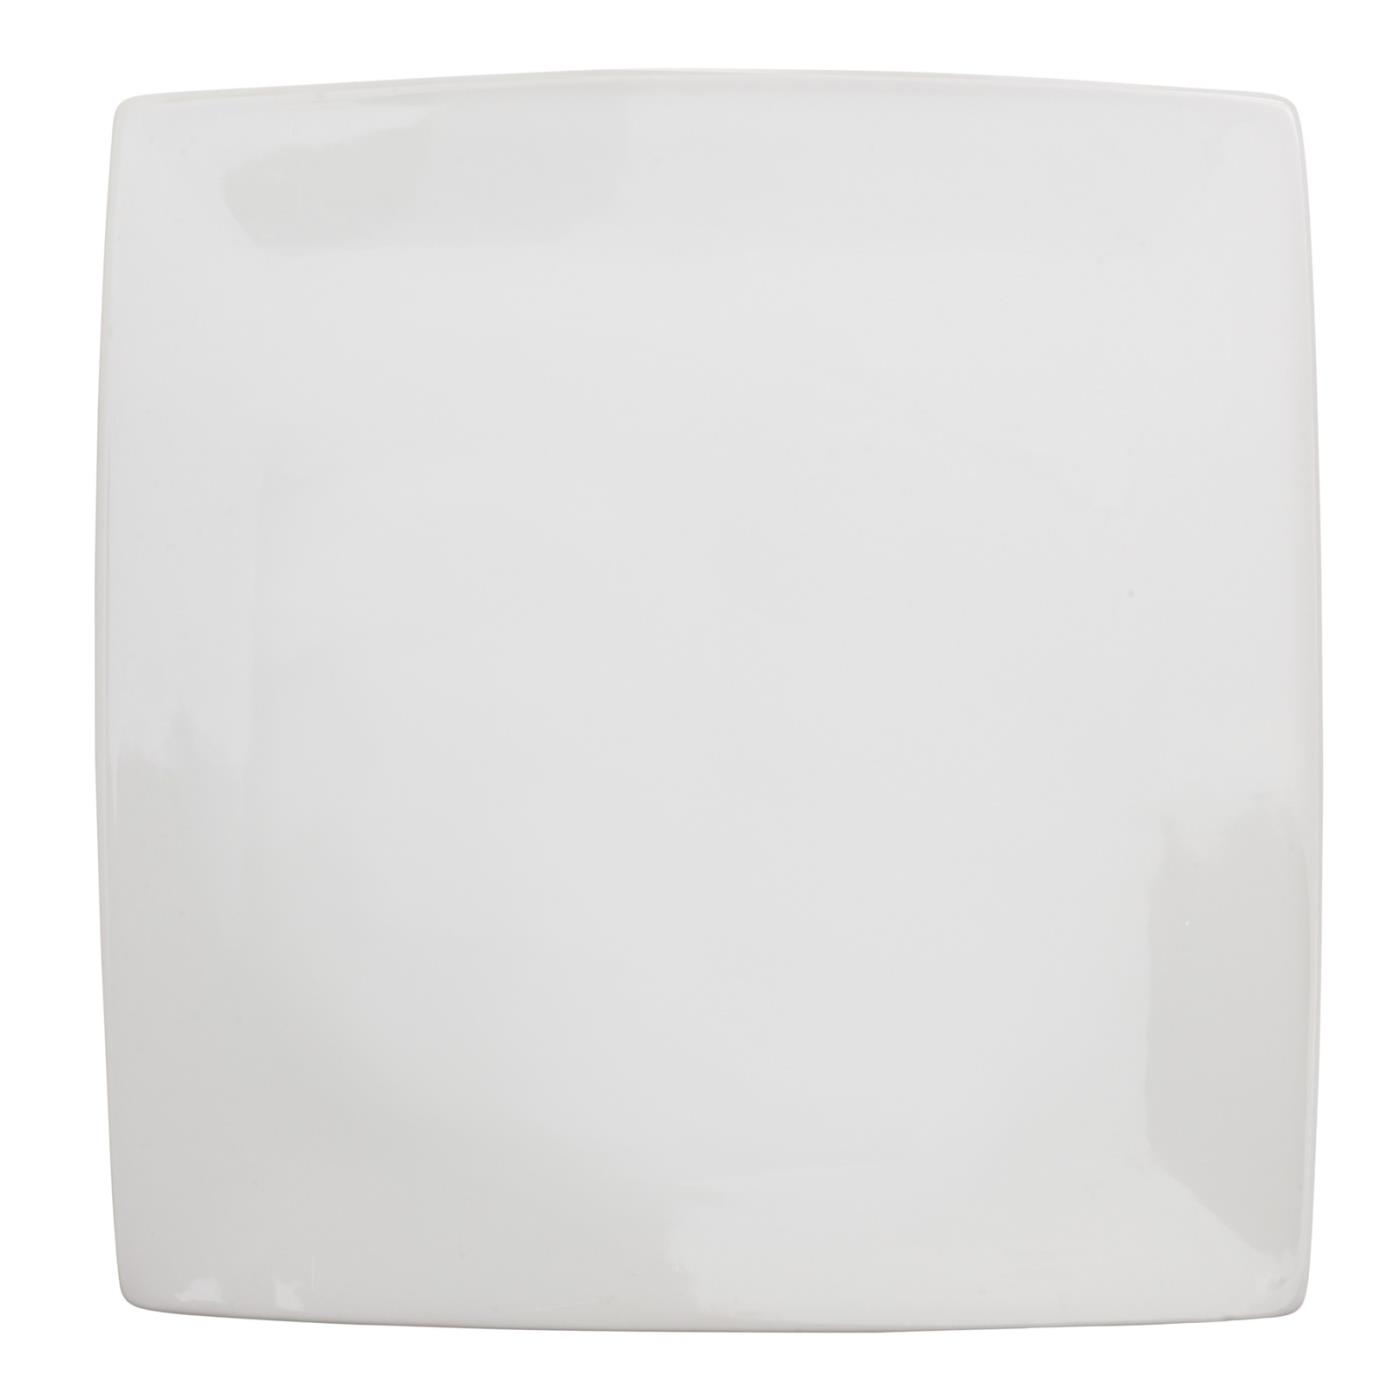 White Canvas Designer Plate 11""